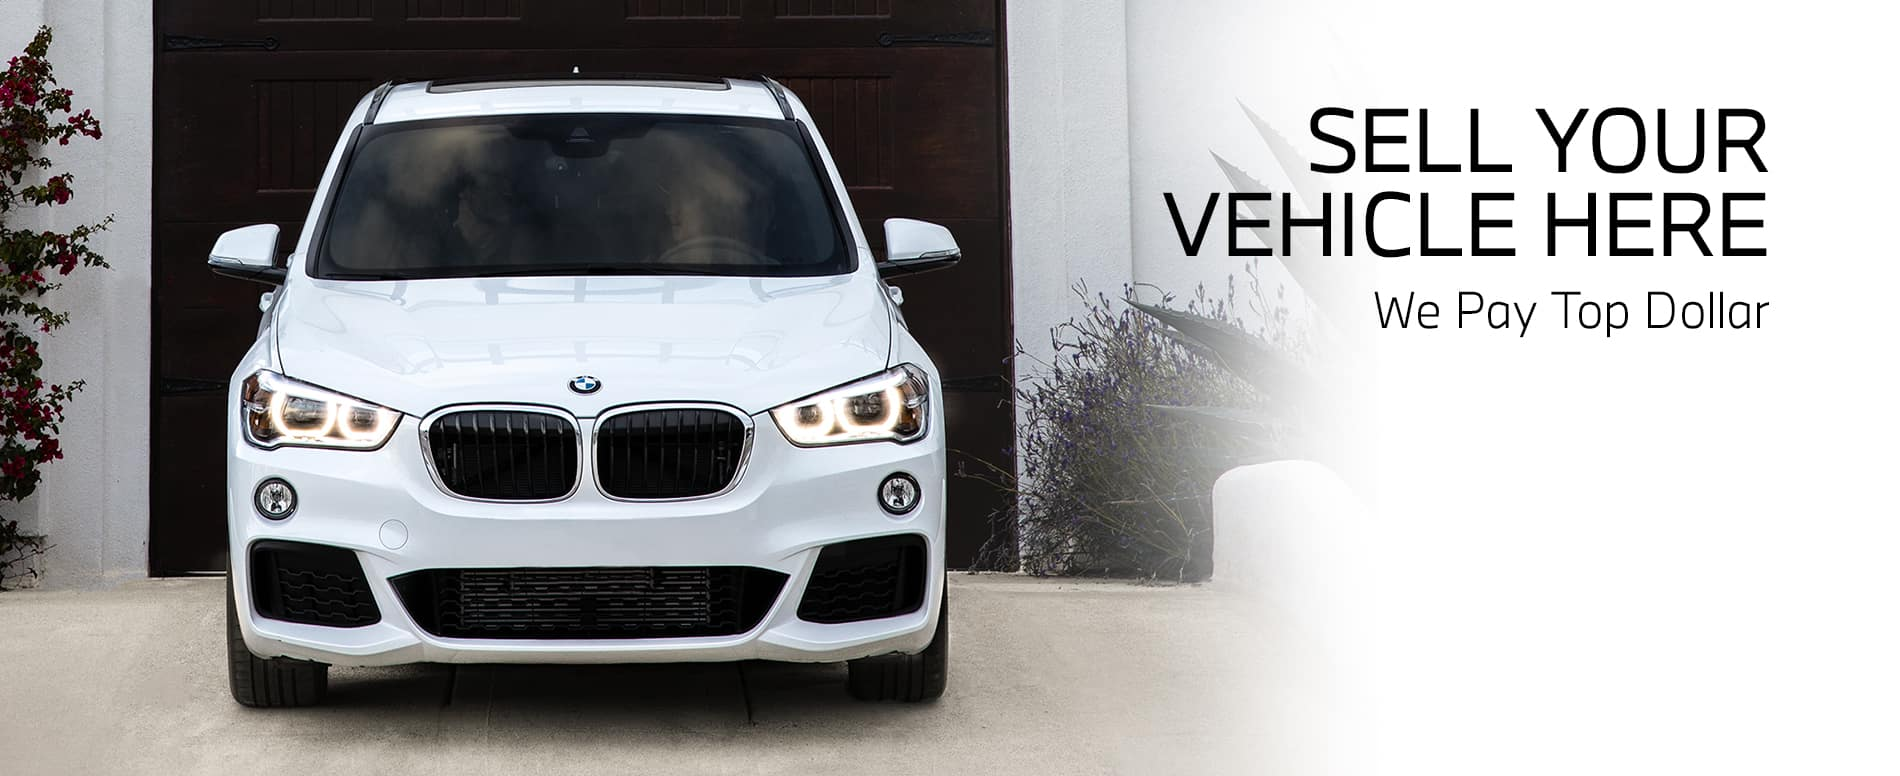 Reeves BMW Sell Your Vehicle